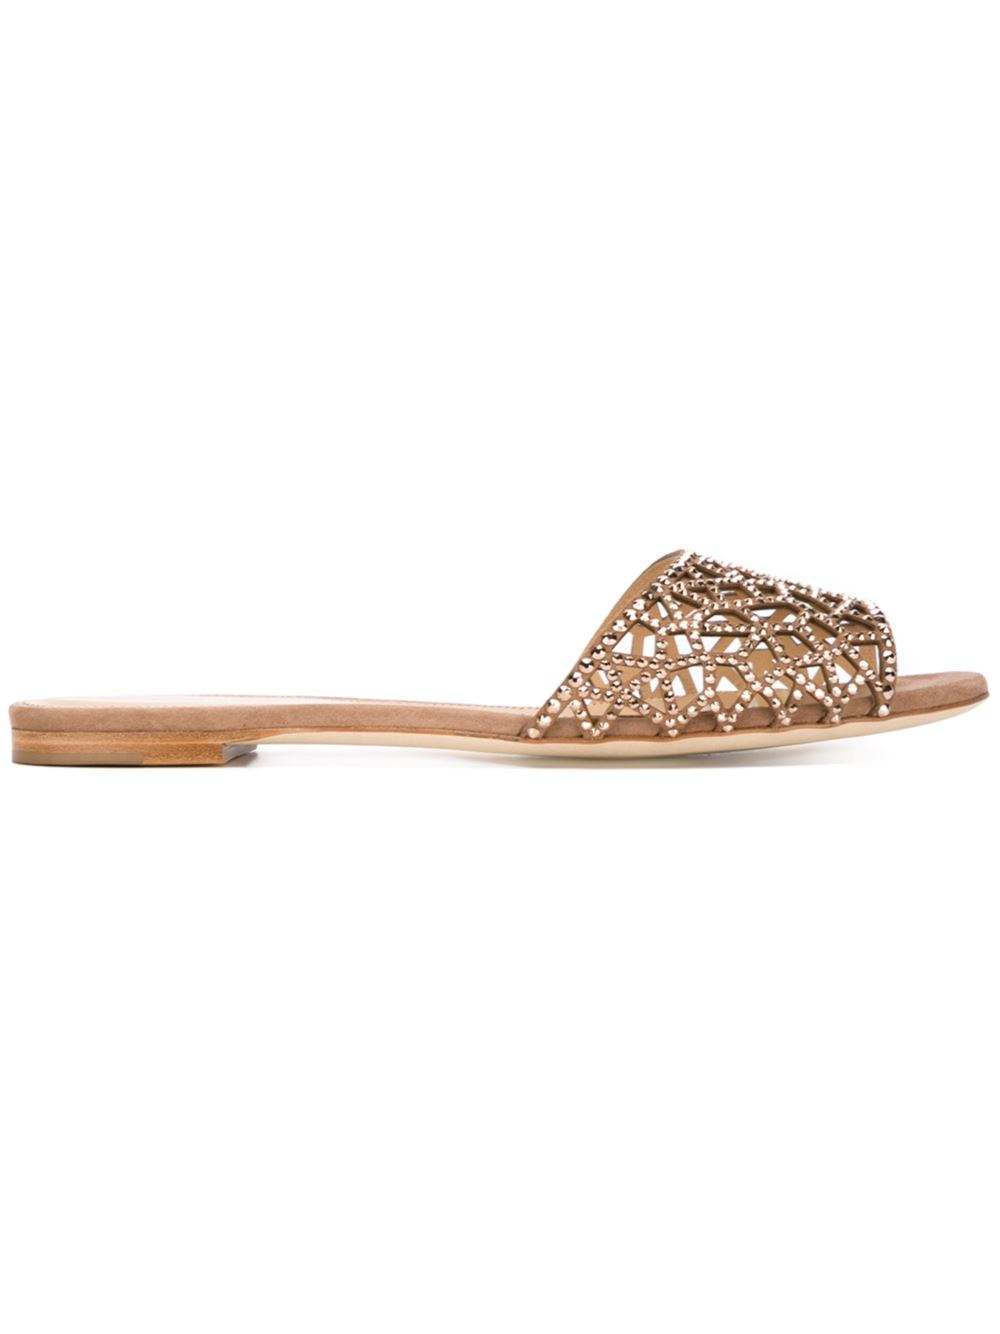 Sergio Rossi Embellished Flat Sandals In Brown | Lyst